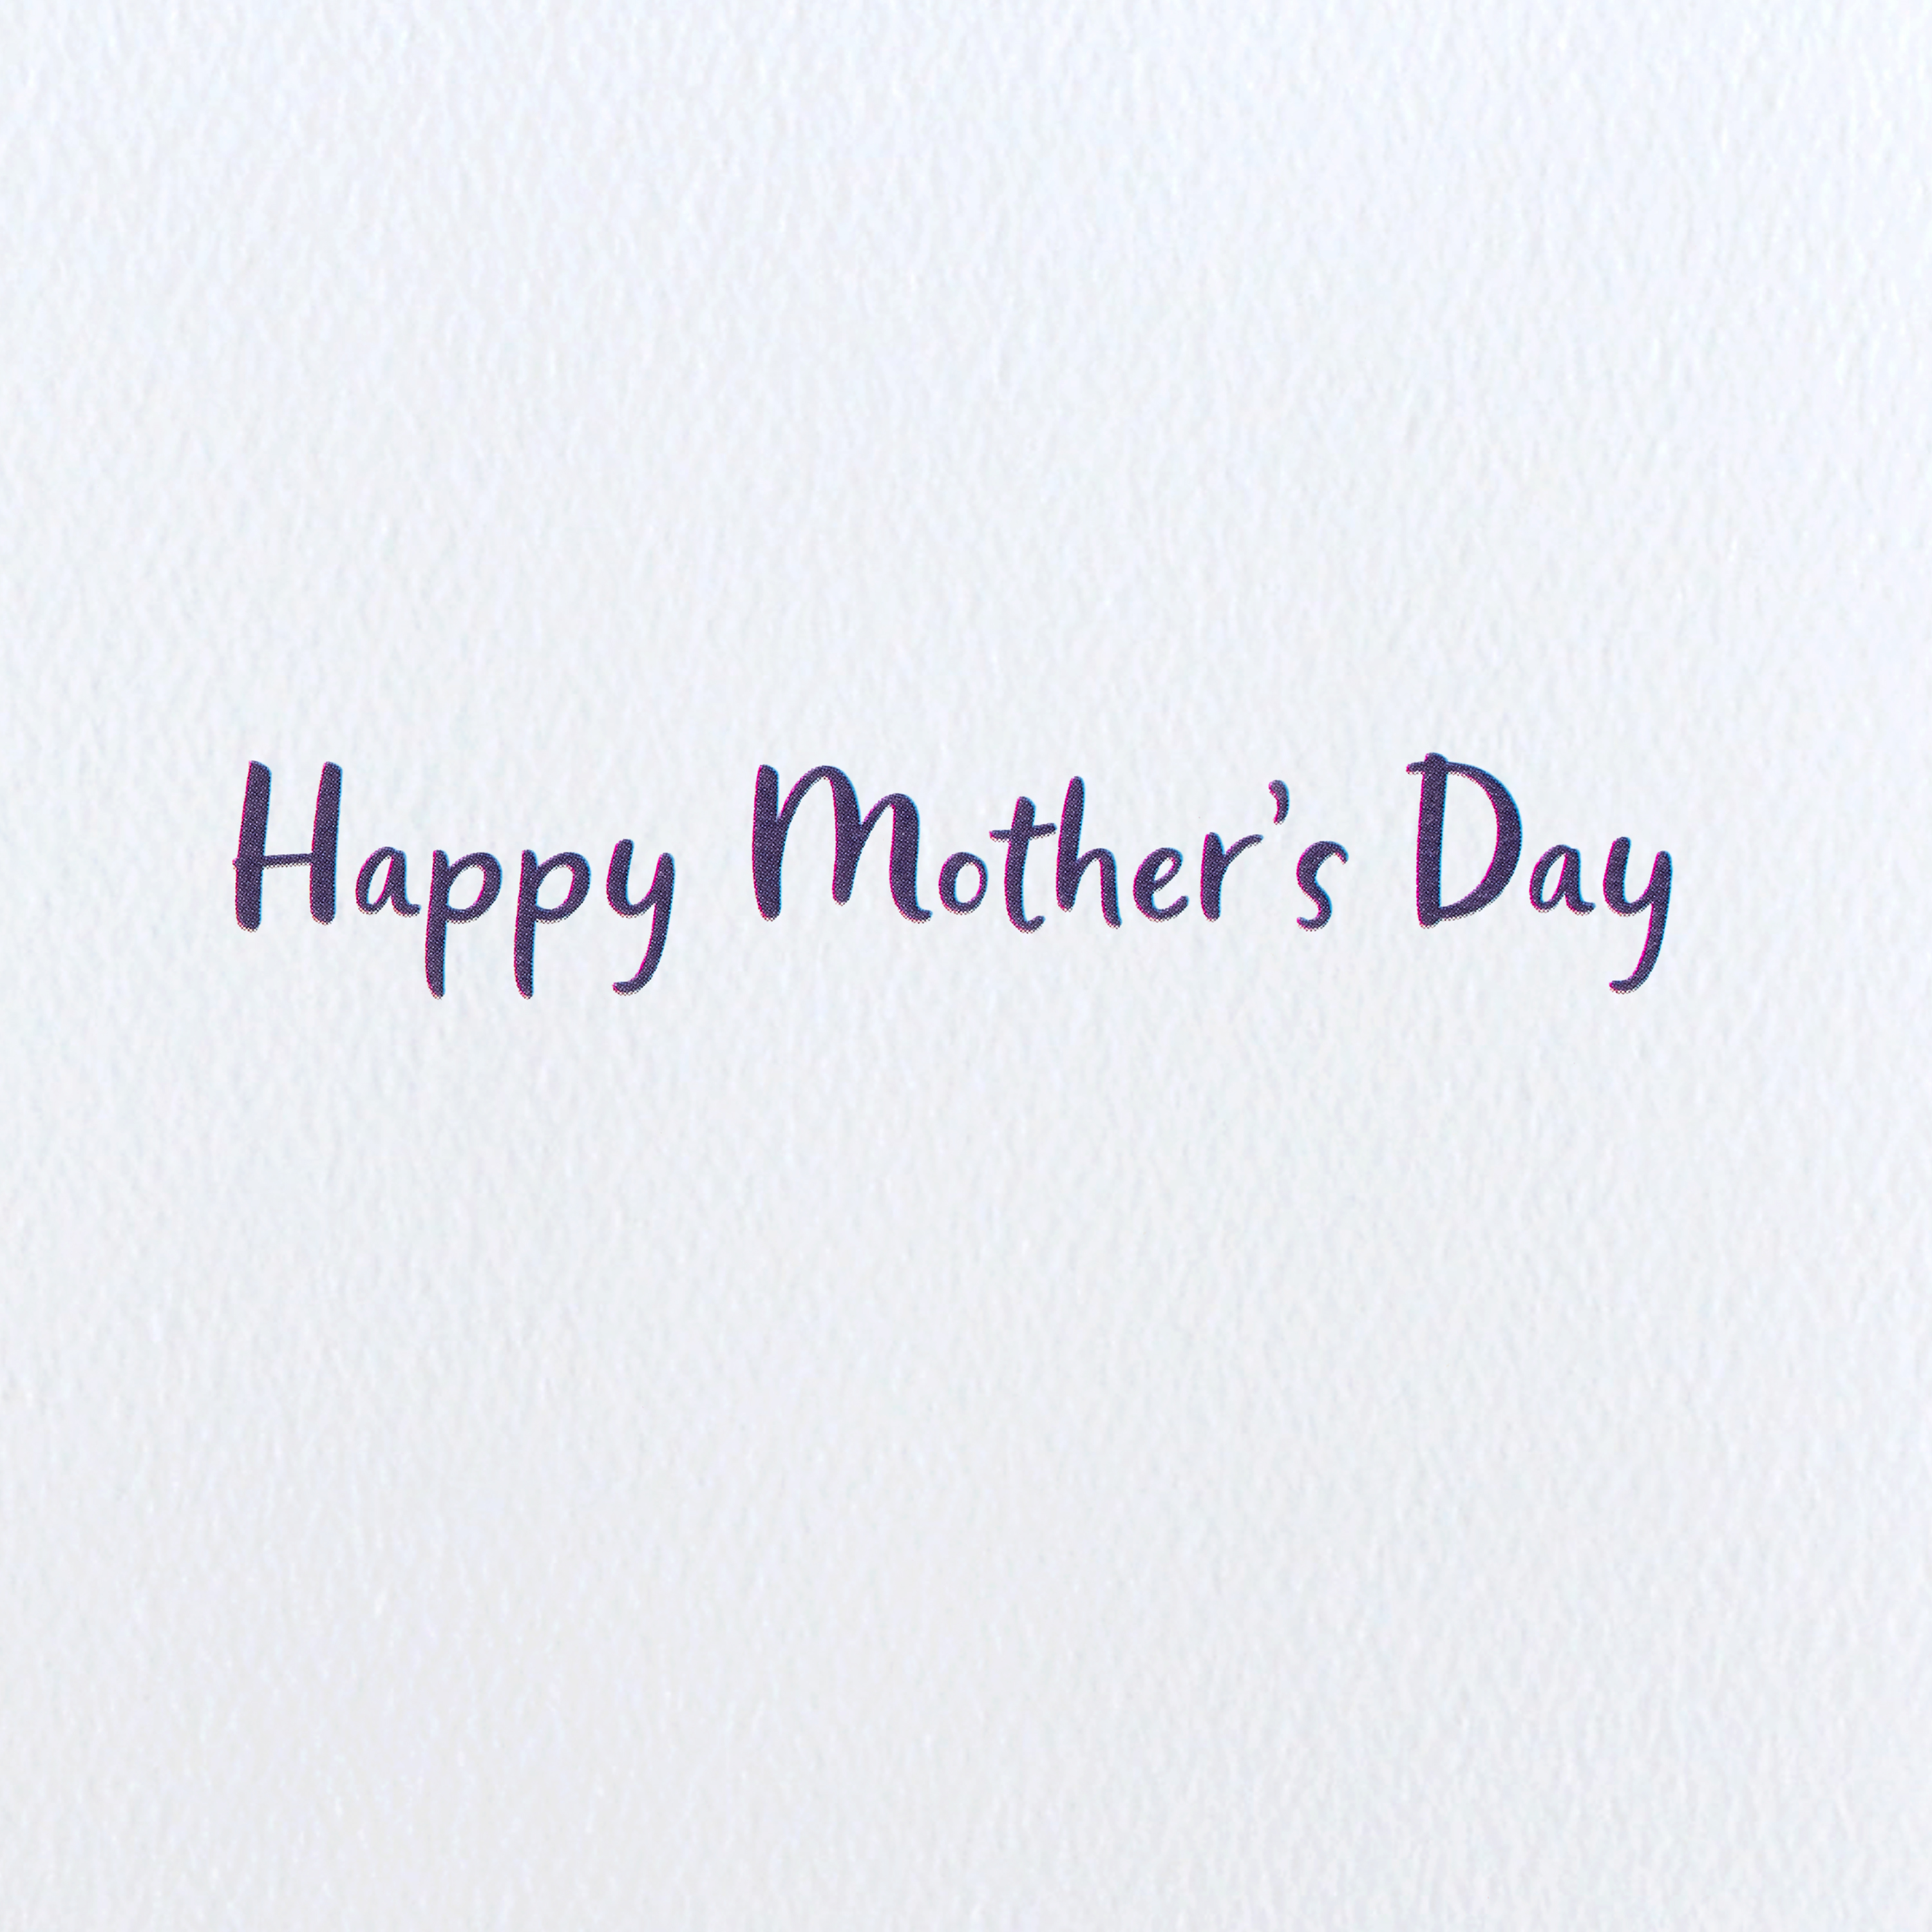 Mother's Day Card from the Dog image